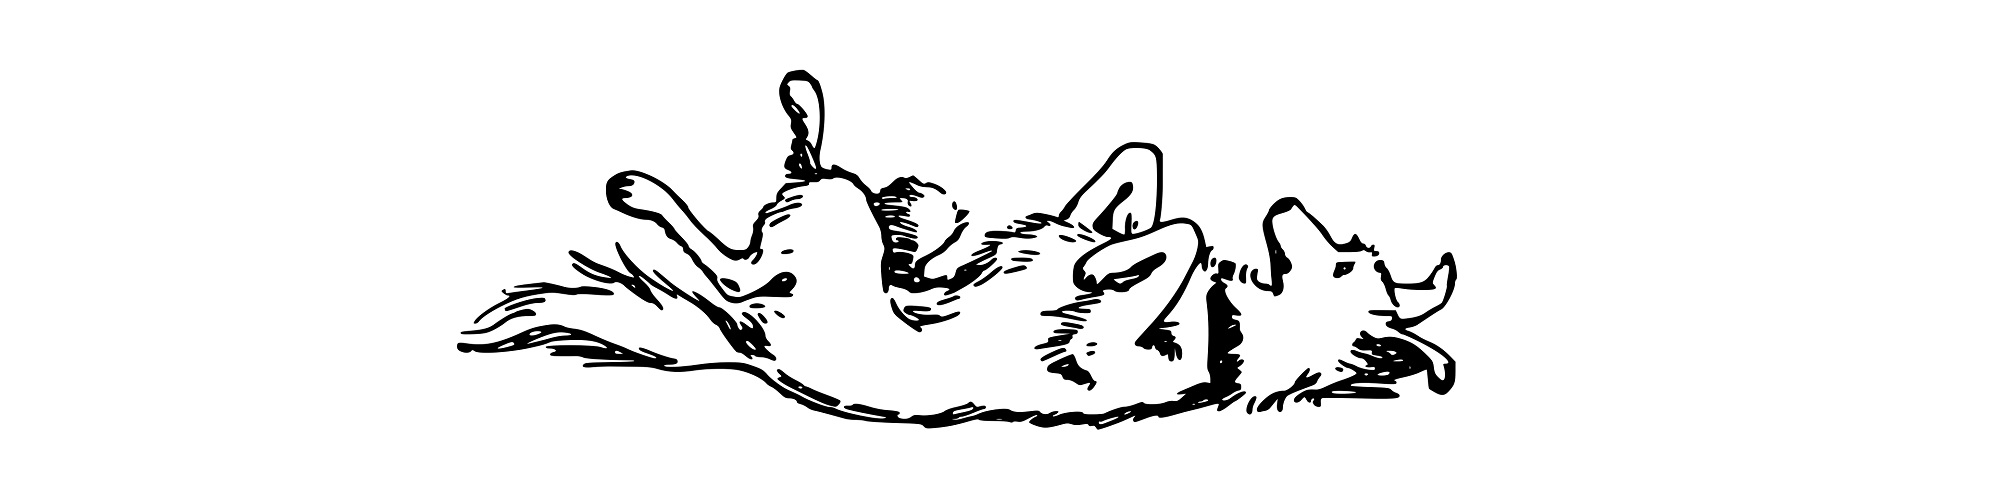 Dog rolling on its back illustration